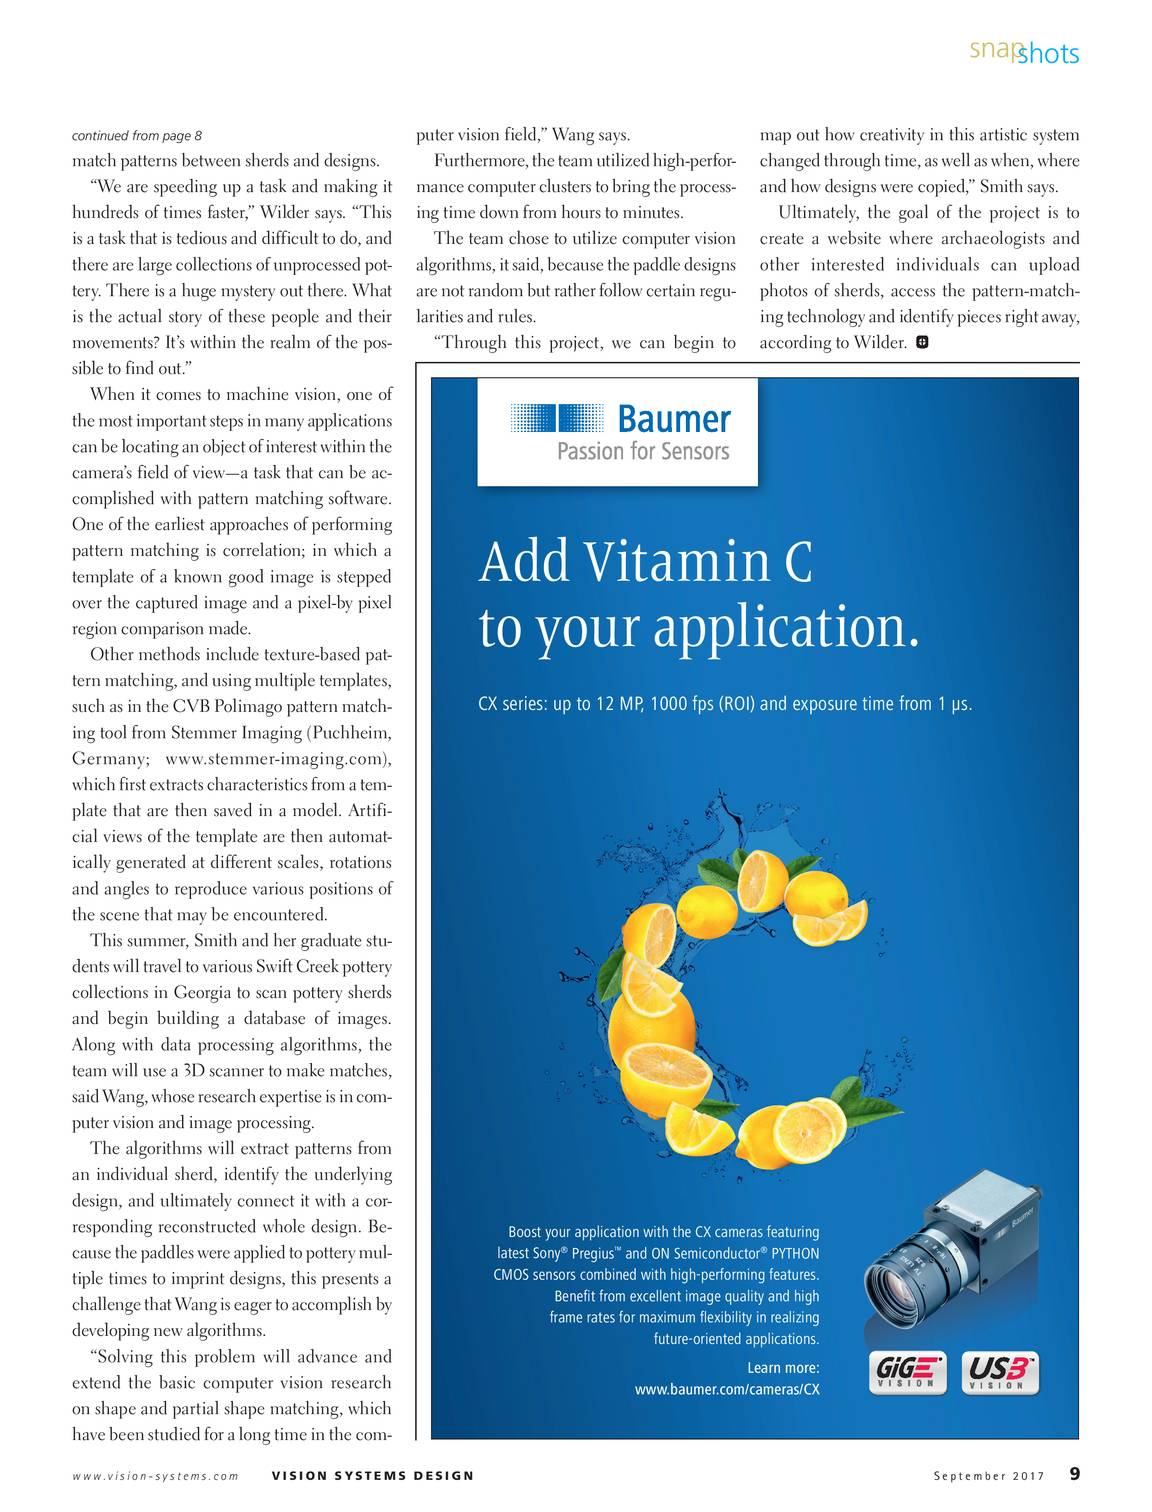 Vision Systems - September 2017 - page 9